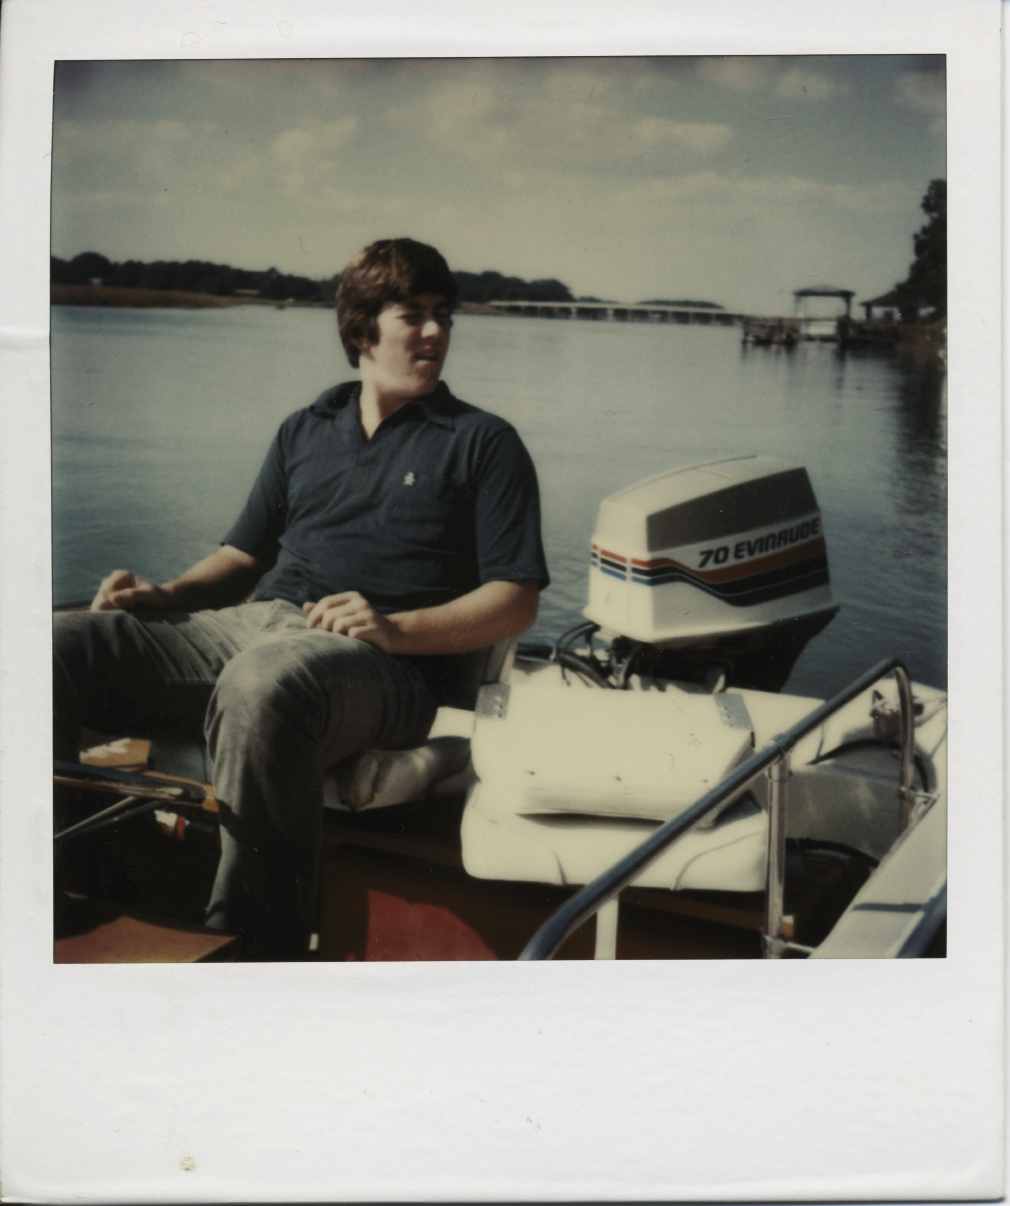 Author Julian Buxton as a 15-year-old in his boat